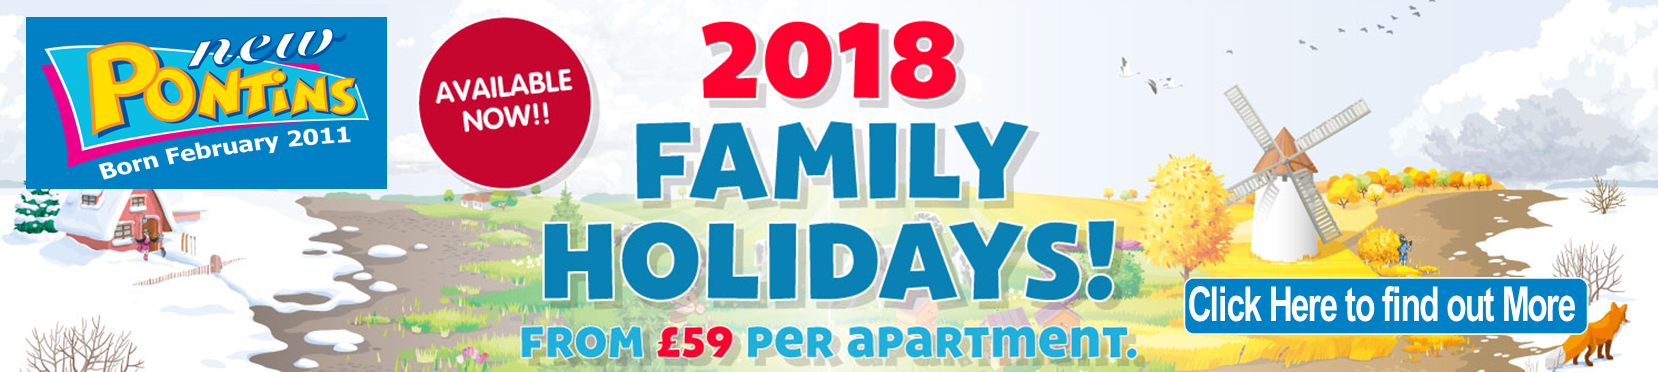 Discount Holidays at Pontins